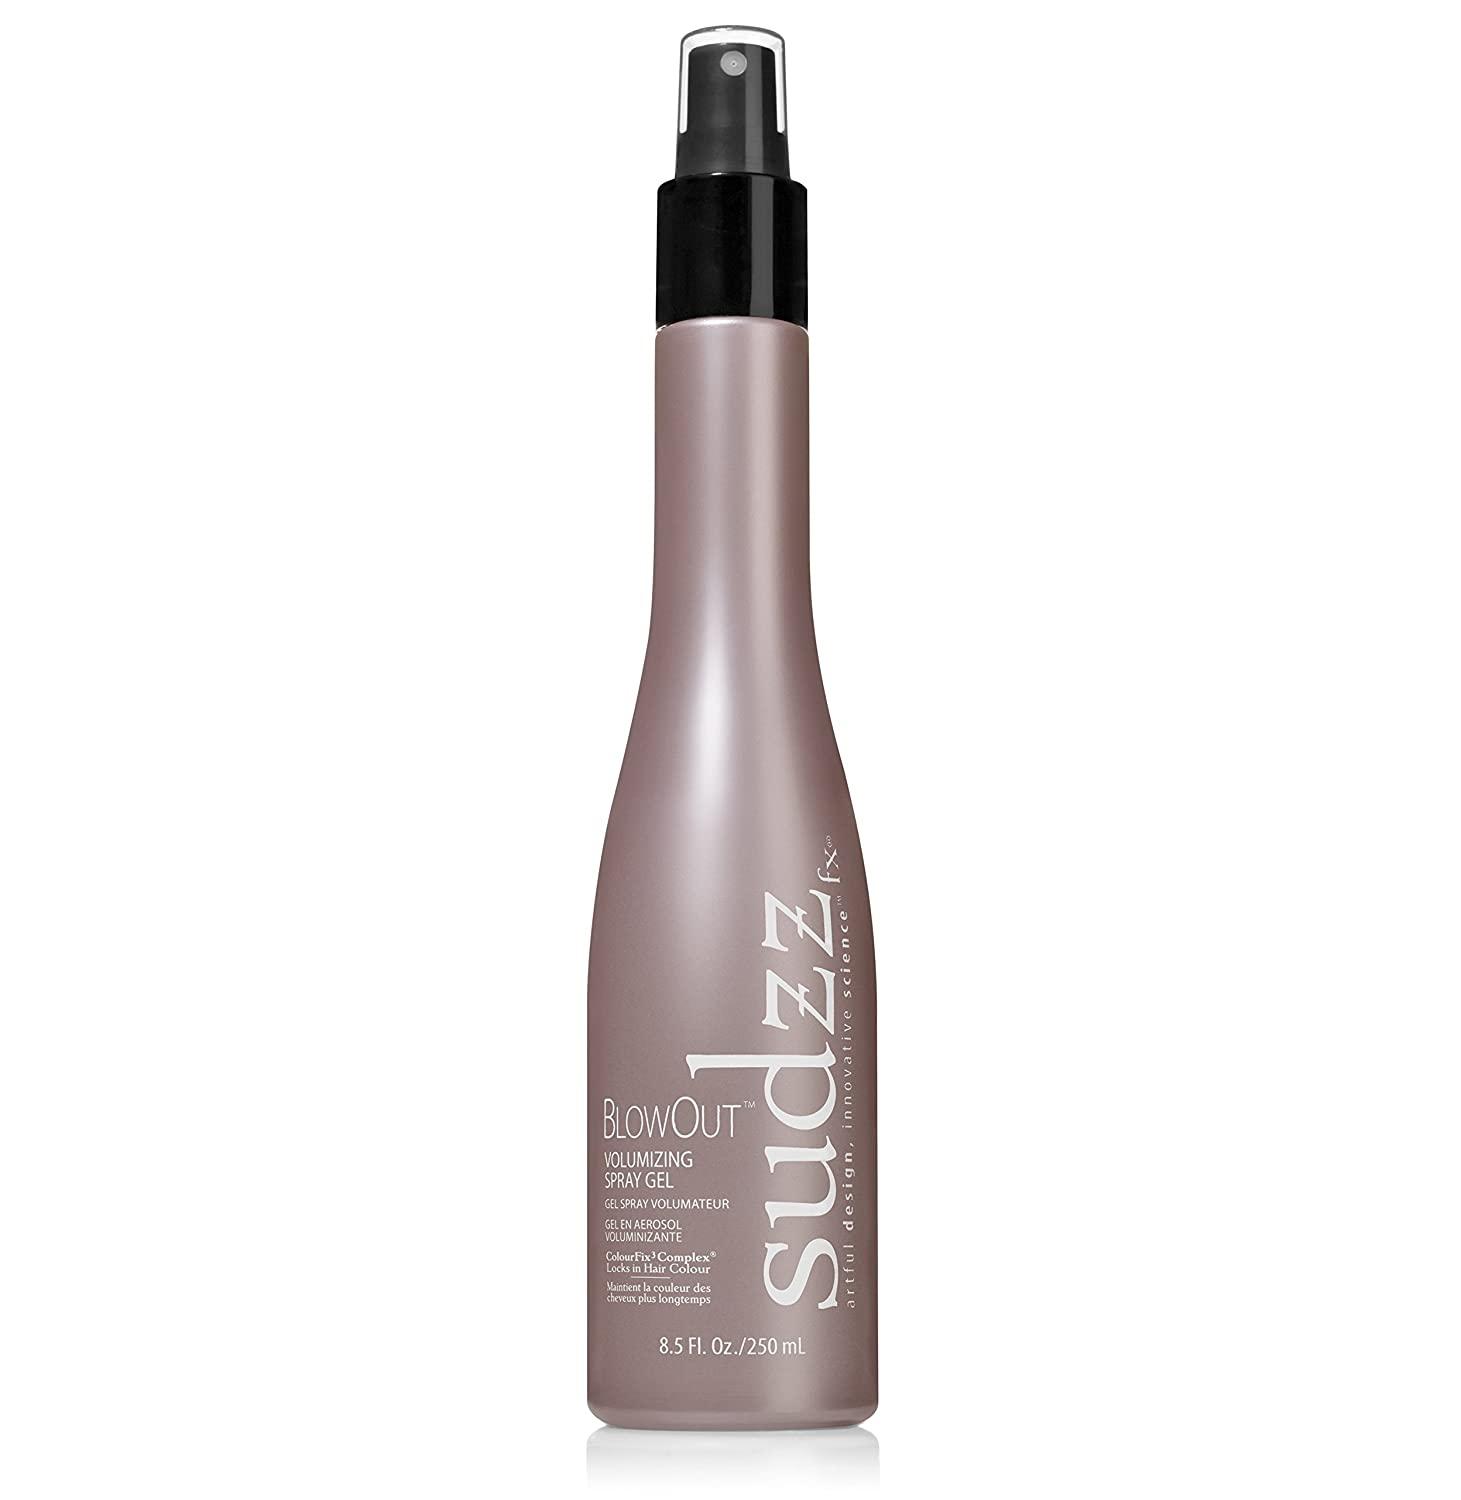 SUDZZFX BlowOut Volumizing Spray Gel (packaging may vary)